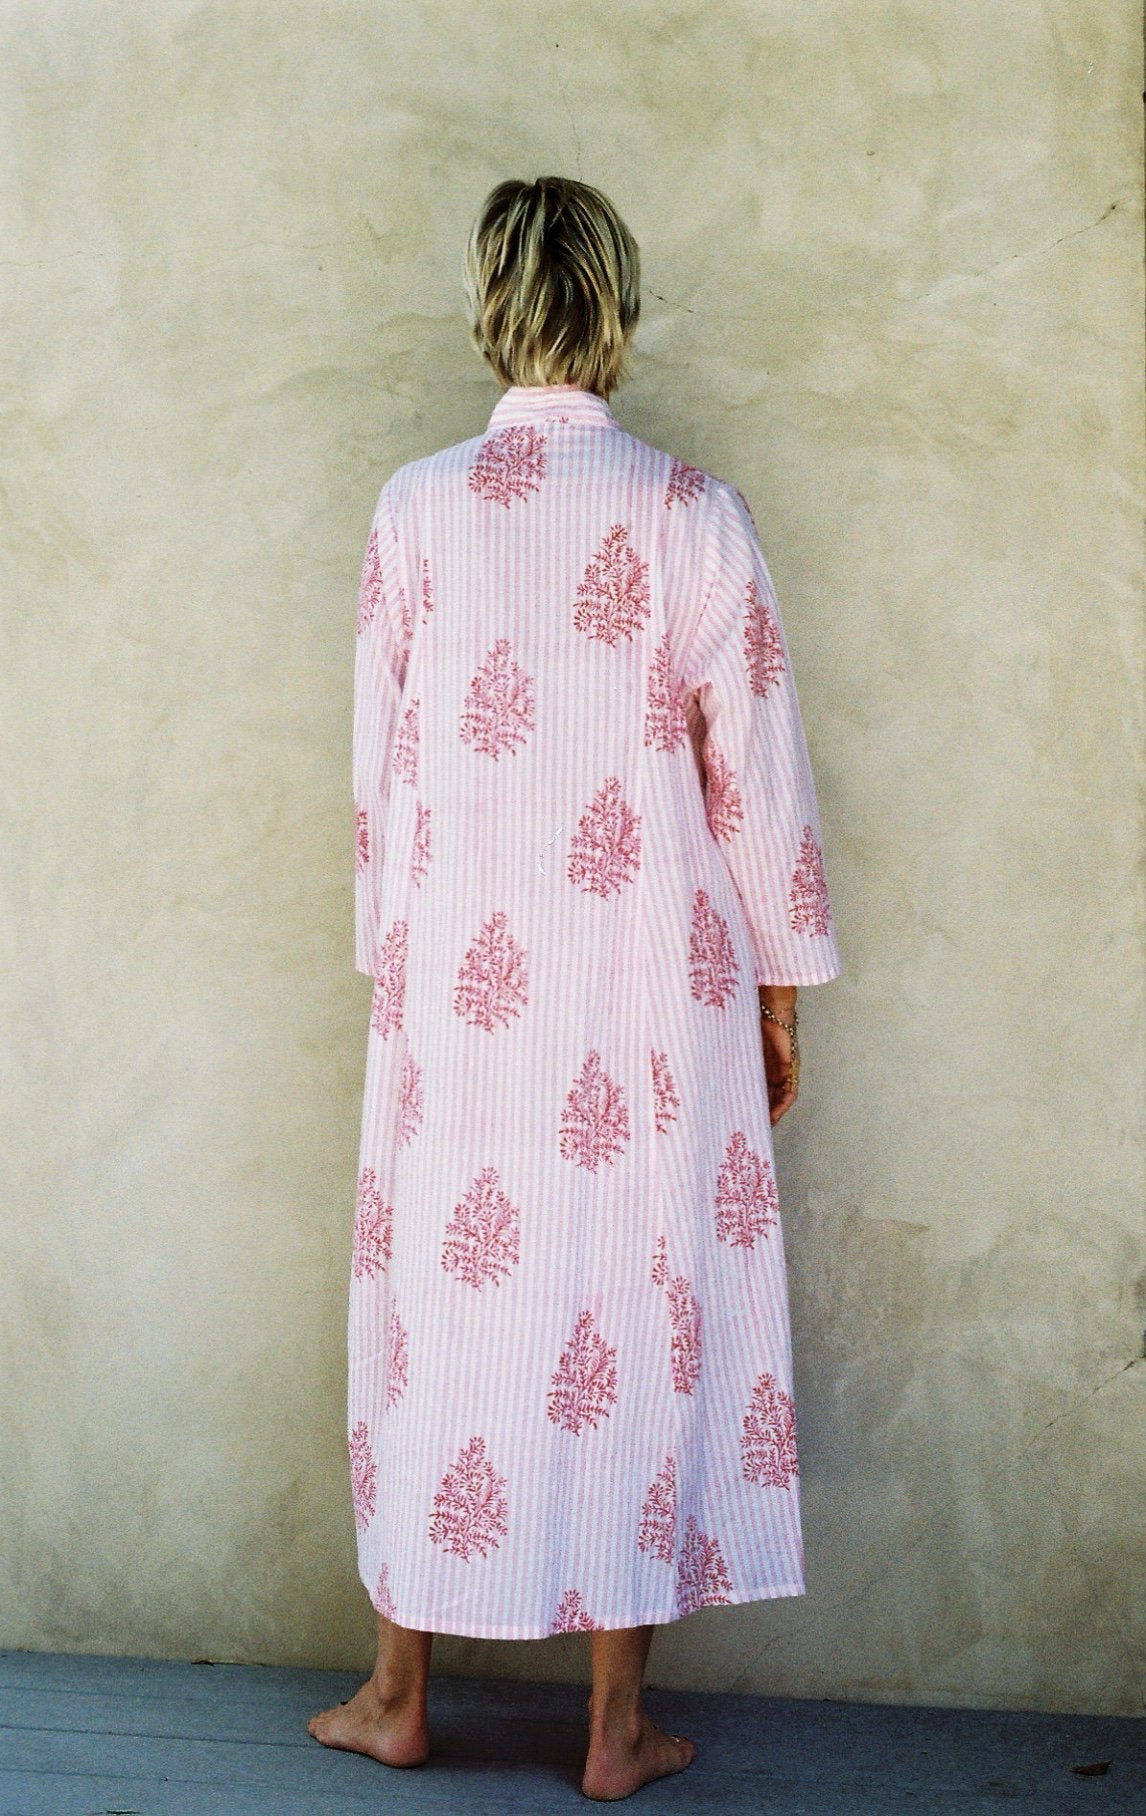 Mes Filles - The Sadie Dress. Candy Print, pink and white 100% Indian cotton dress.